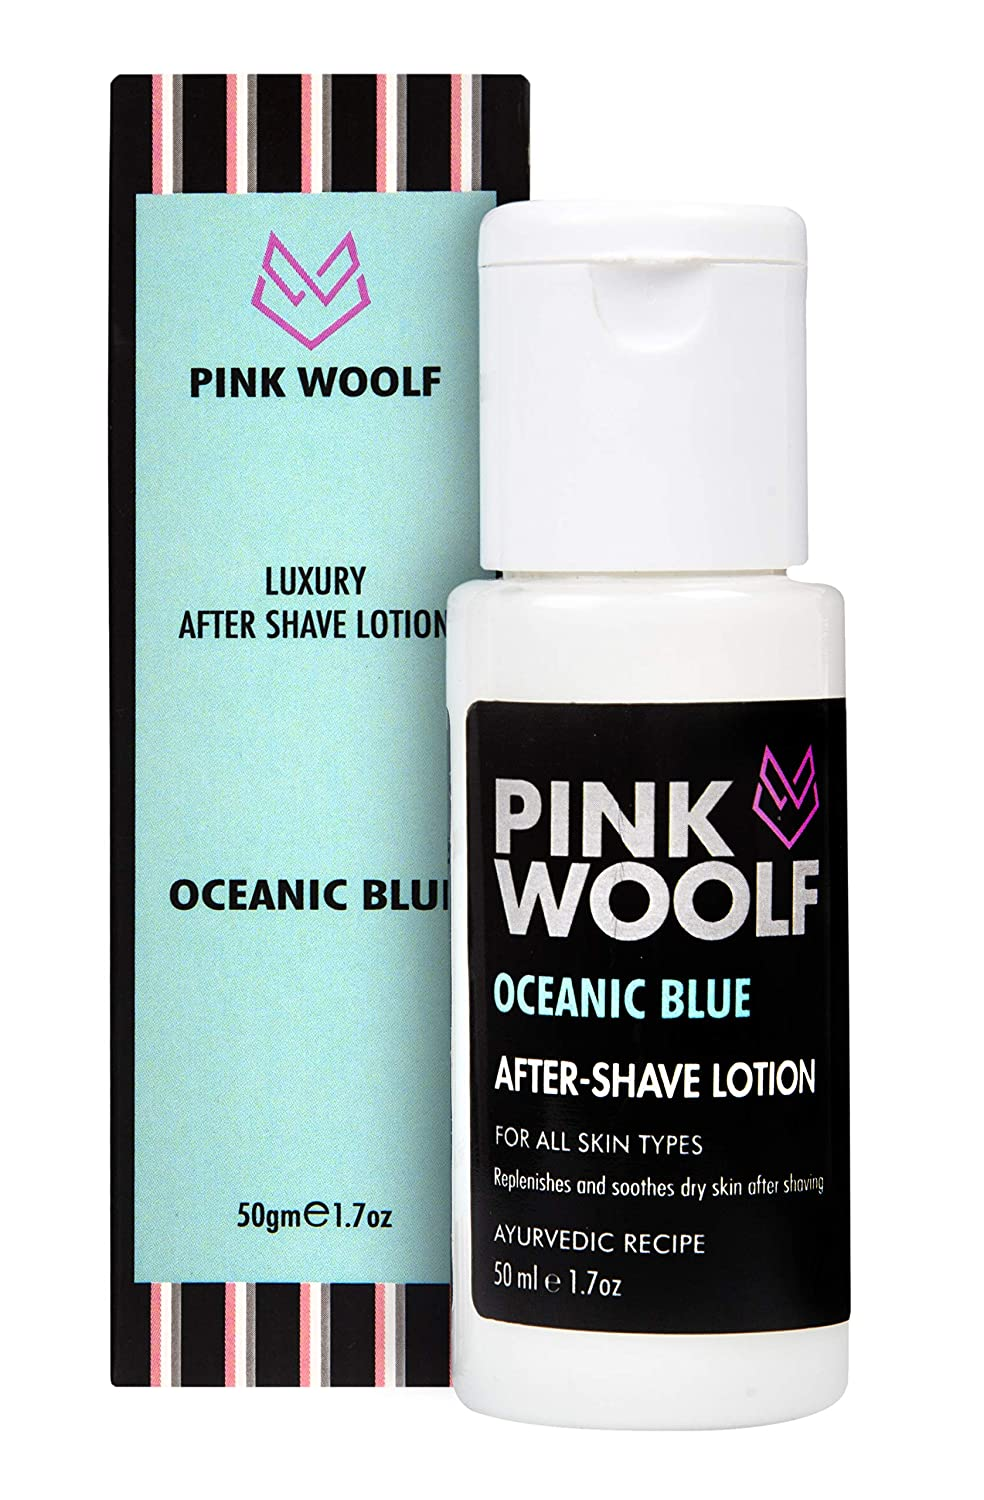 Pink Woolf After Shave Lotion for Men (Oceanic Blue) - 50ml for Cool Moisturized Skin